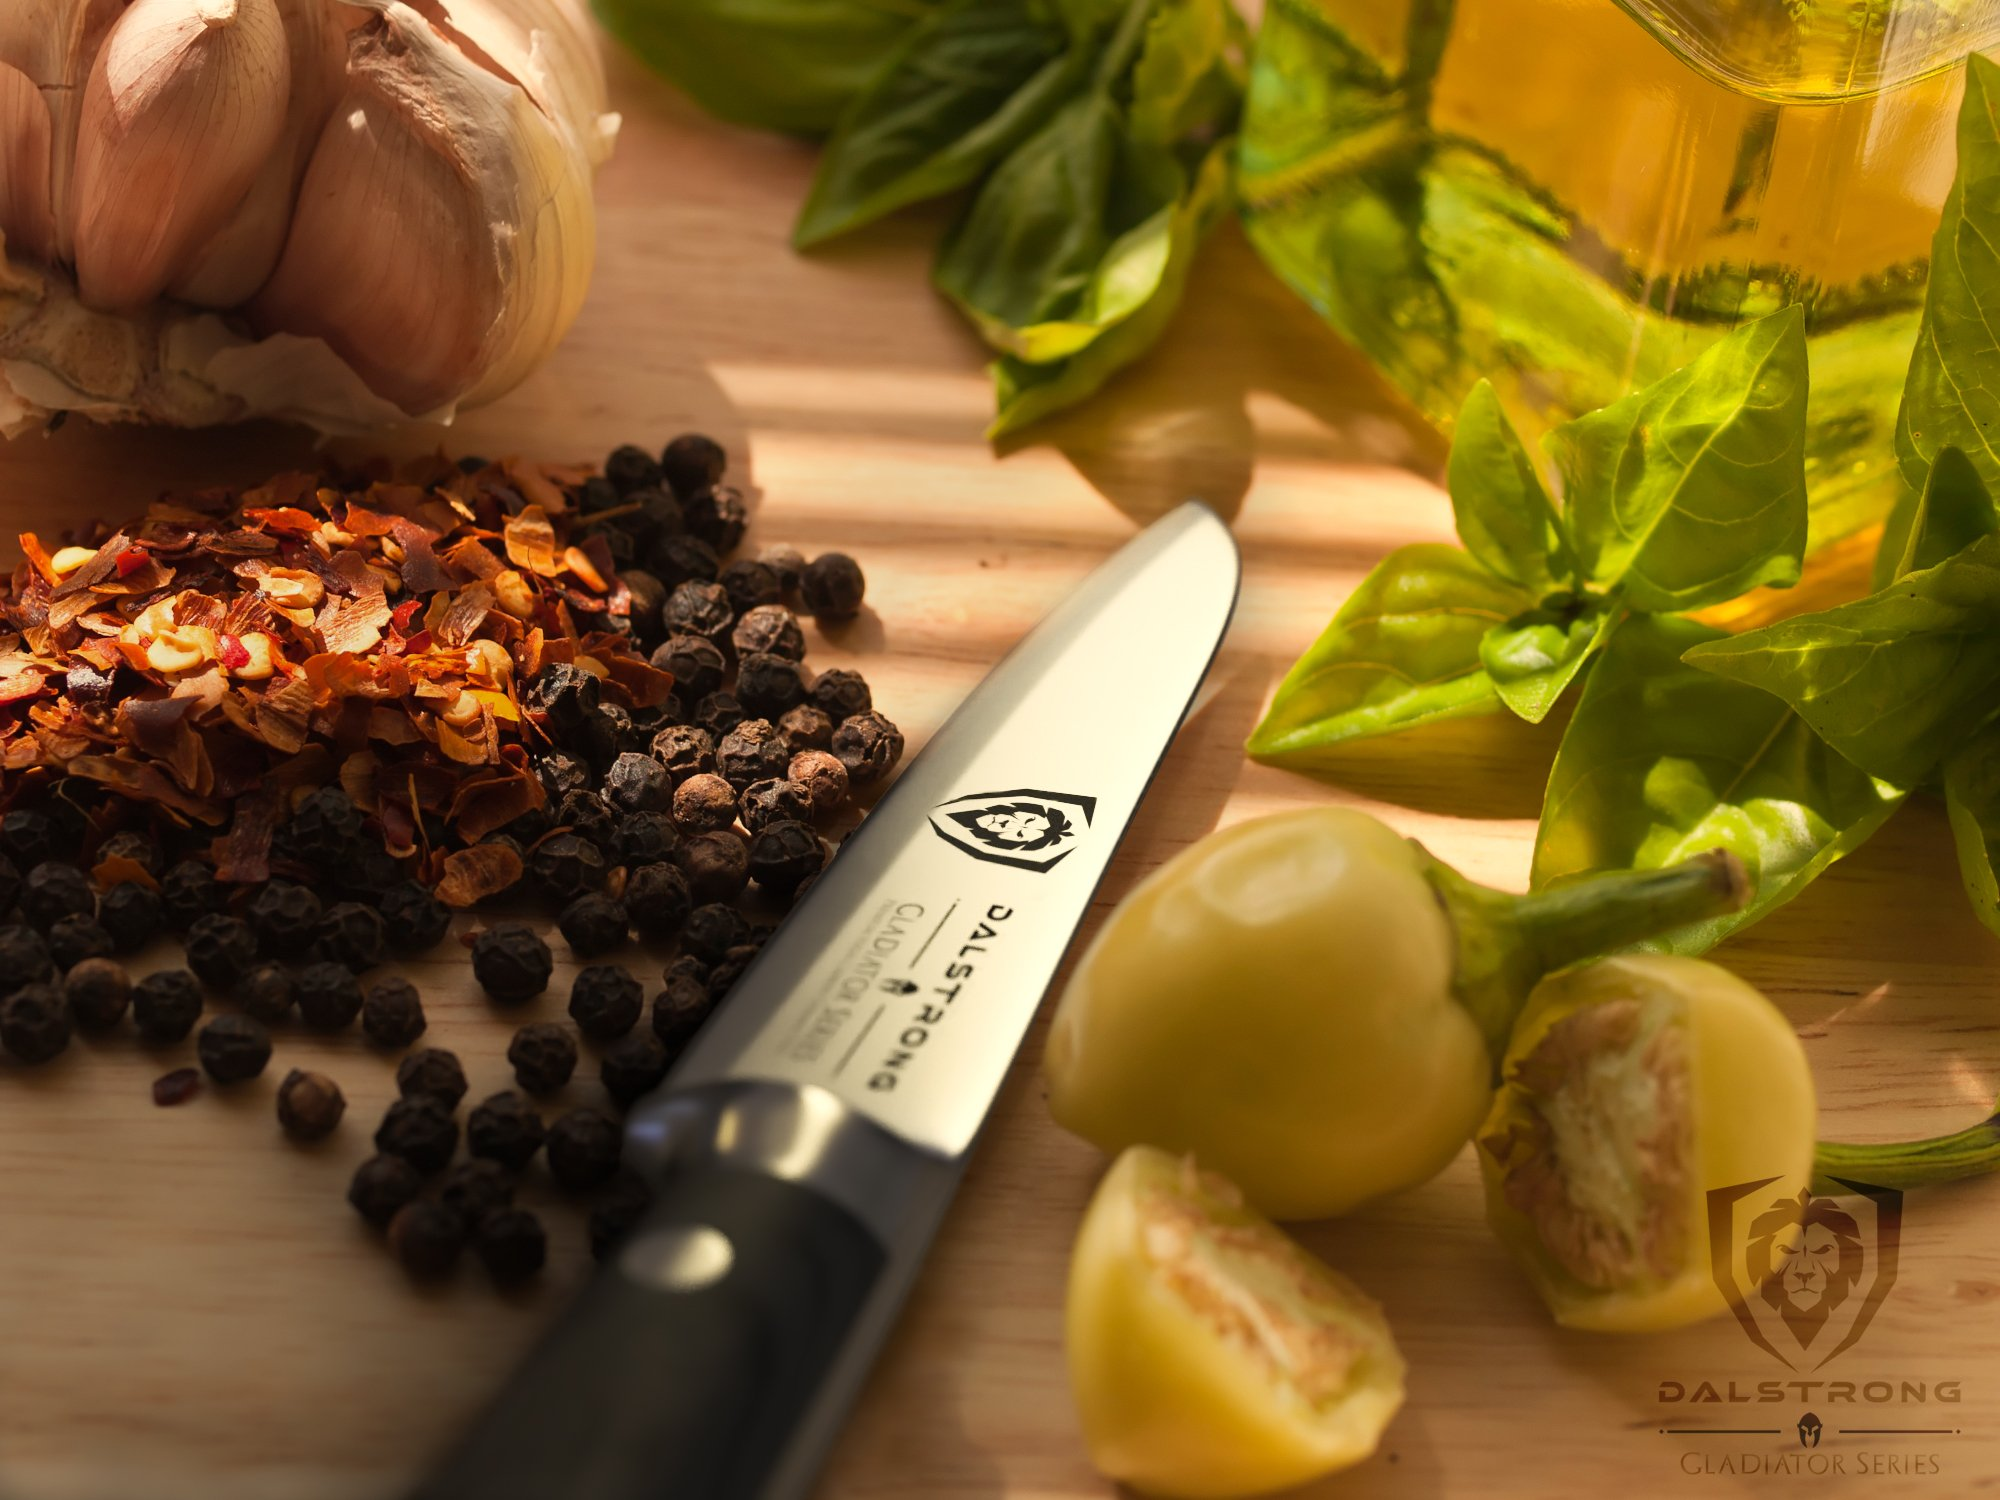 DALSTRONG Paring Knife - Gladiator Series Paring Knife - German HC Steel - 3.75'' by Dalstrong (Image #3)